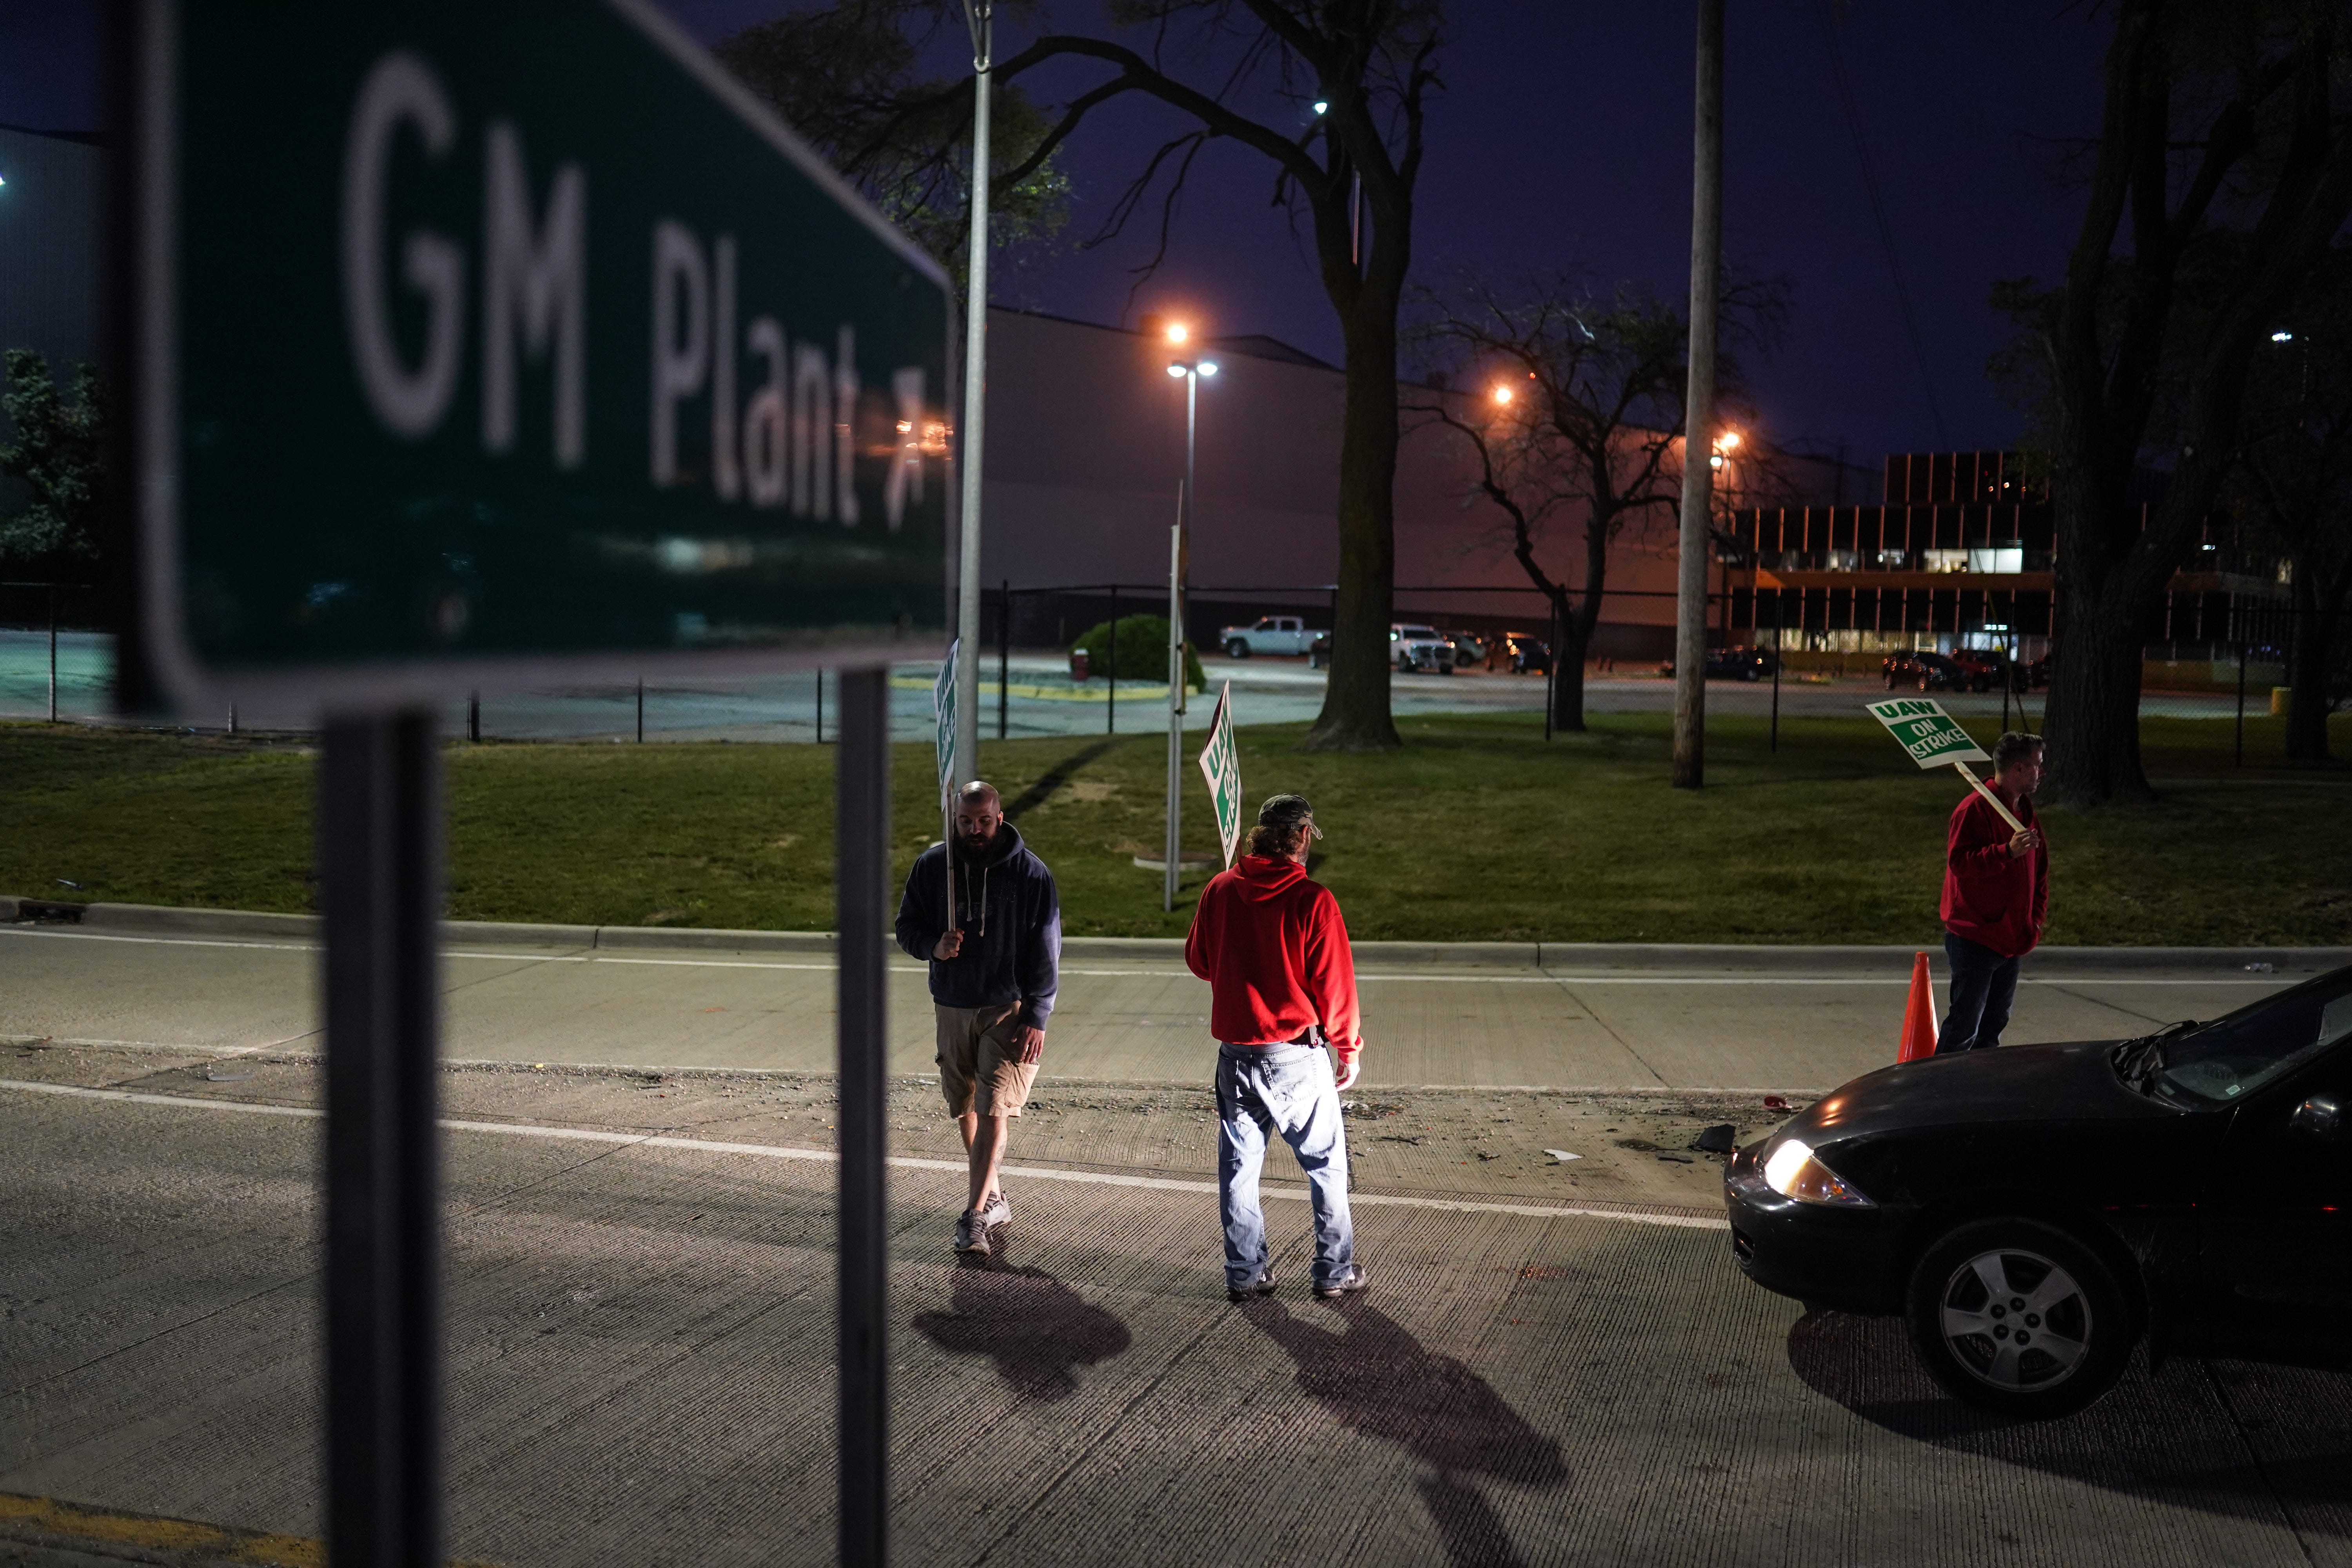 UAW and GM have tense talks that continue into evening